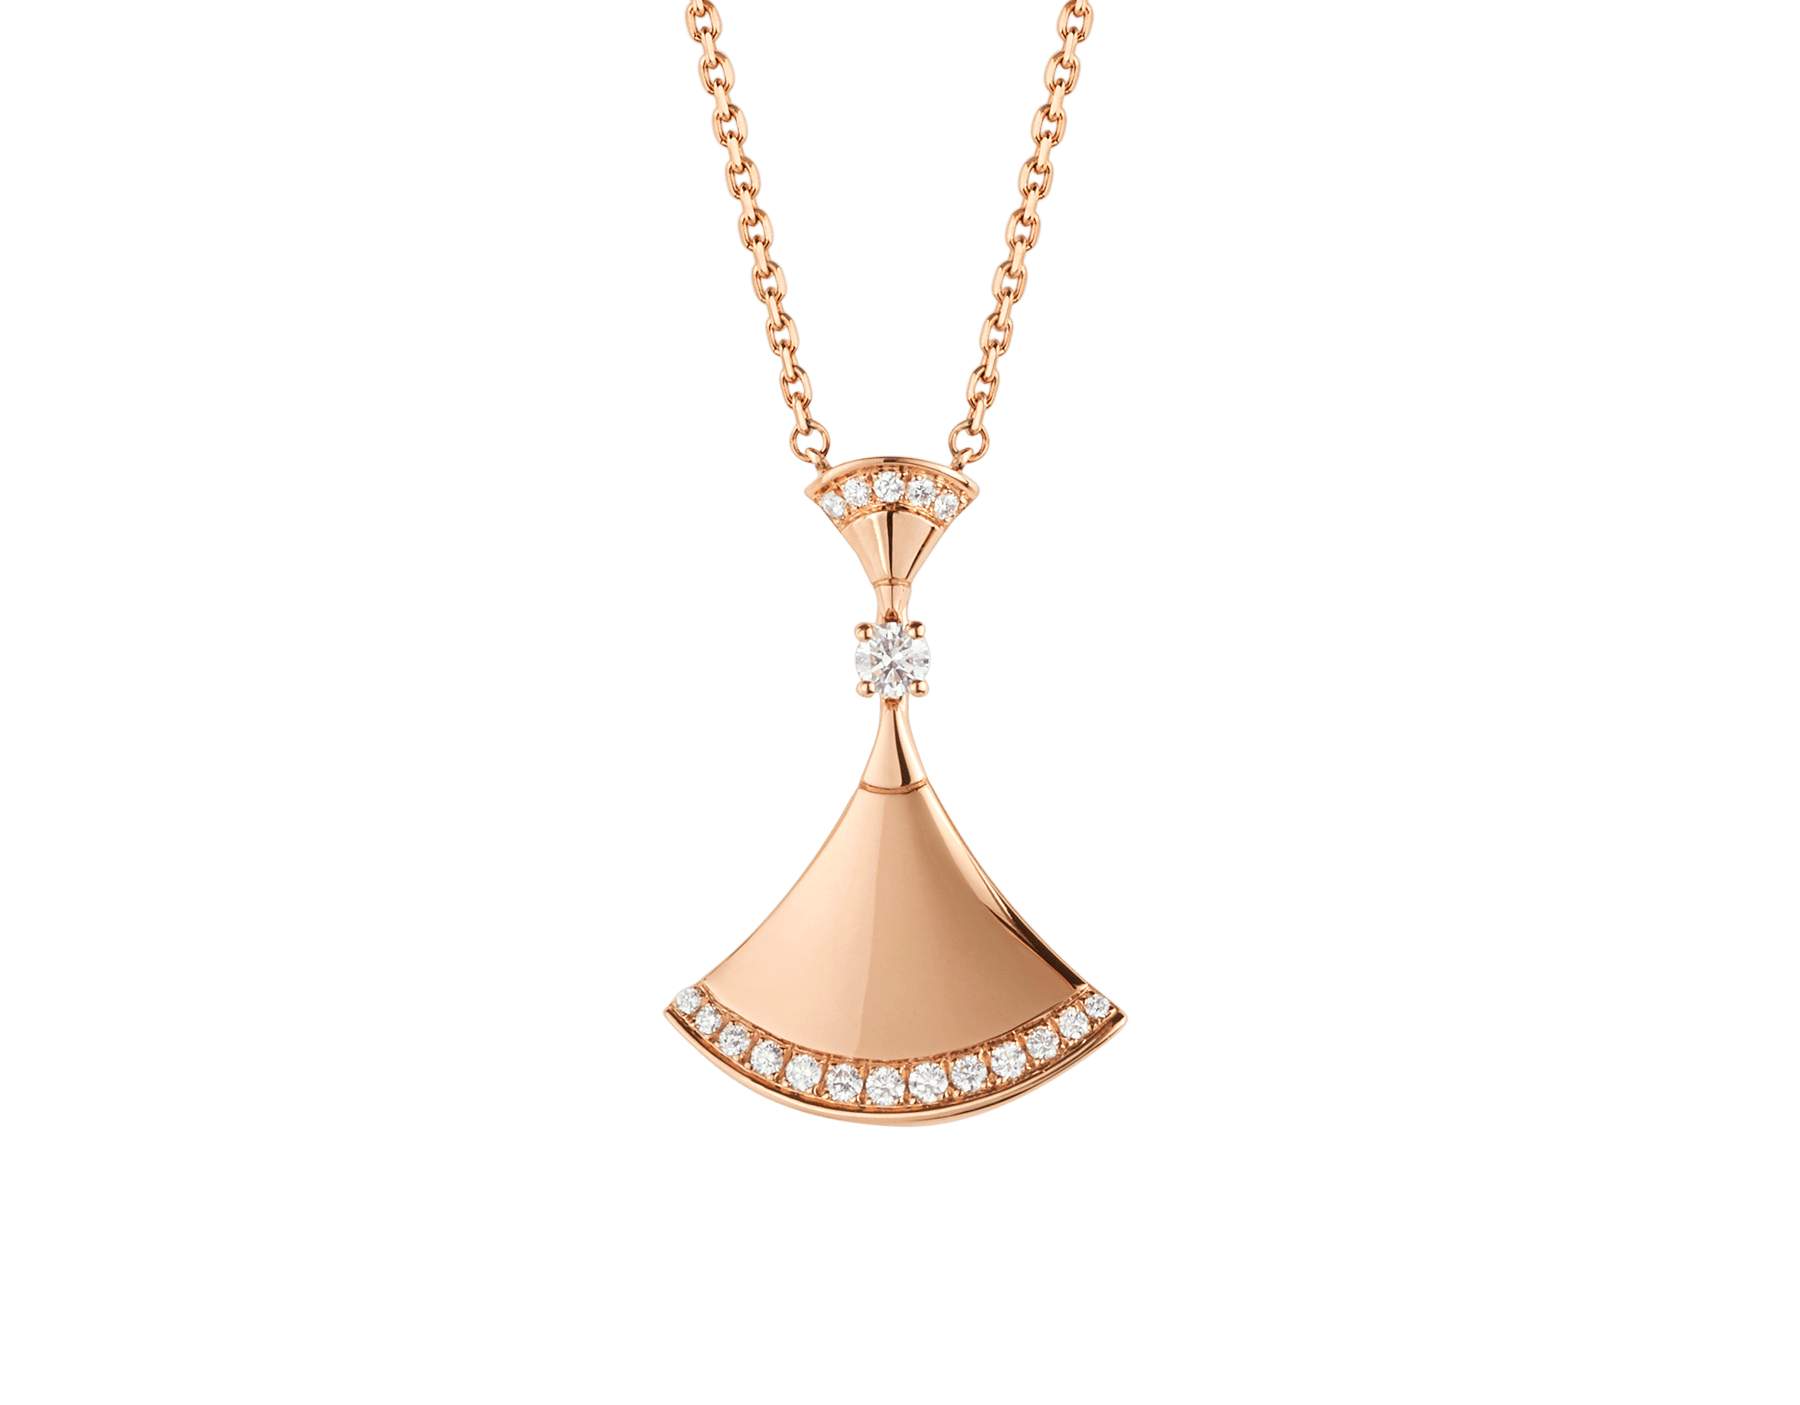 DIVAS' DREAM necklace in 18 kt rose gold with pendant set with one diamond and pavé diamonds. 350063 image 1